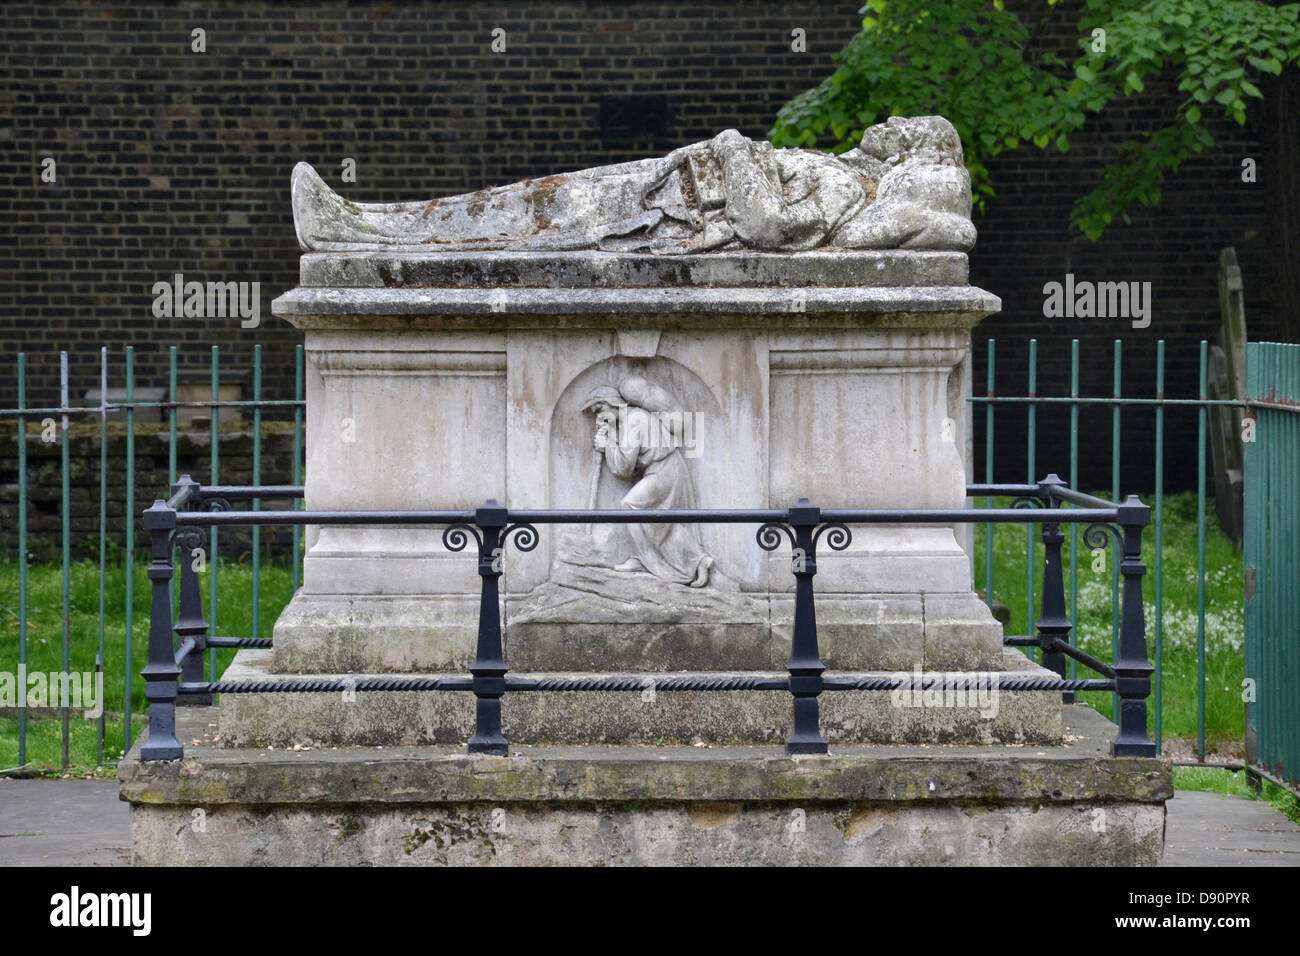 The grave of John Bunyan (1628-1688) in Bunhill Fields Burial ground, London. - Stock Image